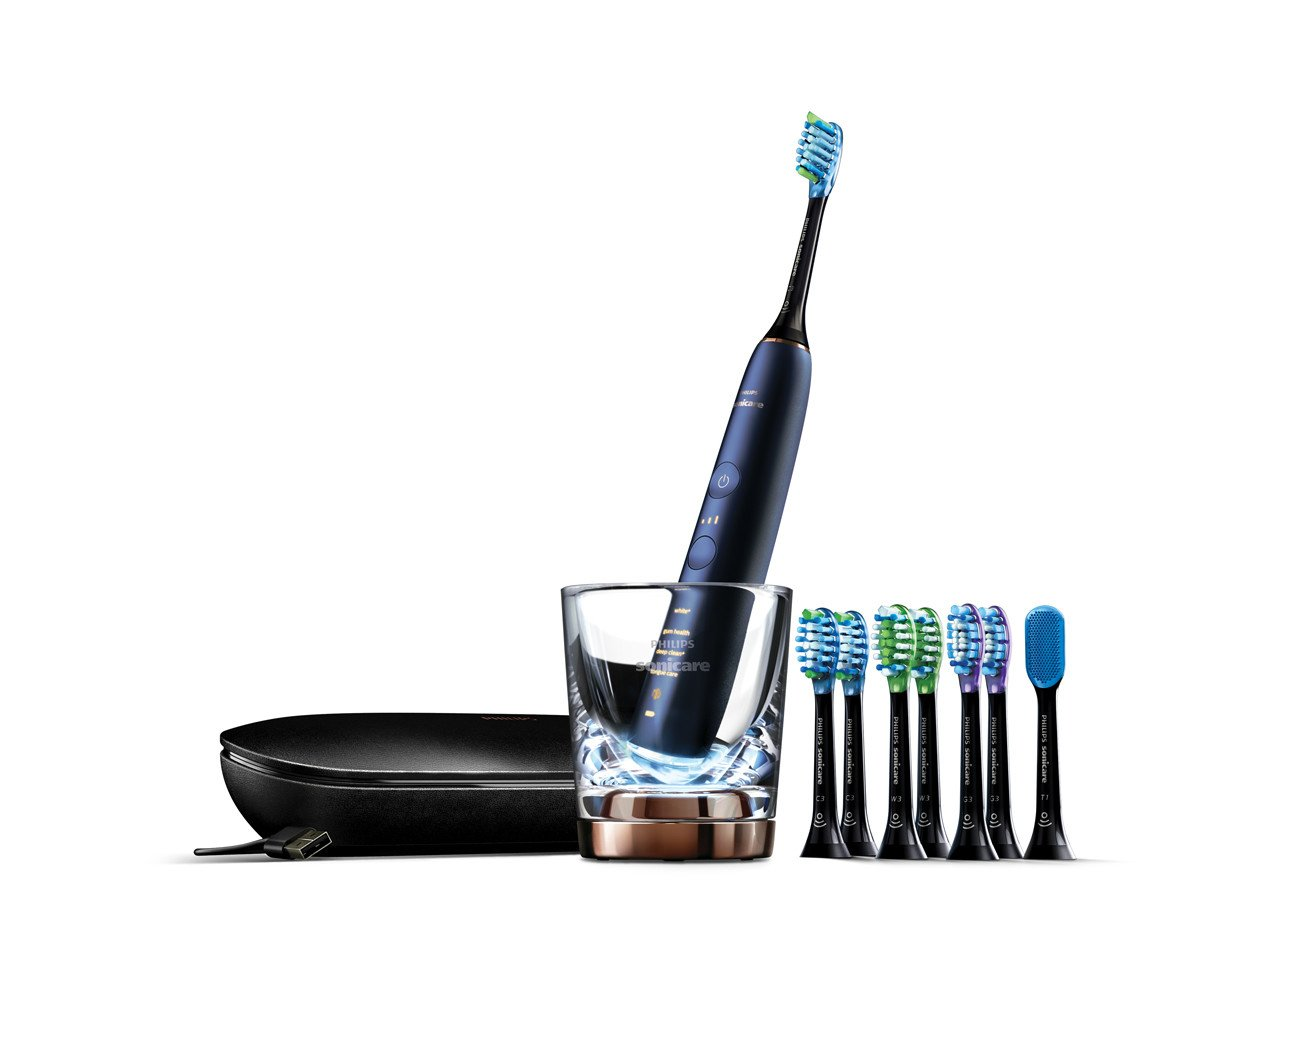 Philips Sonicare DiamondClean Smart Electric, Rechargeable toothbrush for Complete Oral Care, with Charging Travel Case, 5 modes, and 8 Brush Heads  – 9700 Series, Lunar Blue, HX9957/51 by Philips Sonicare (Image #26)